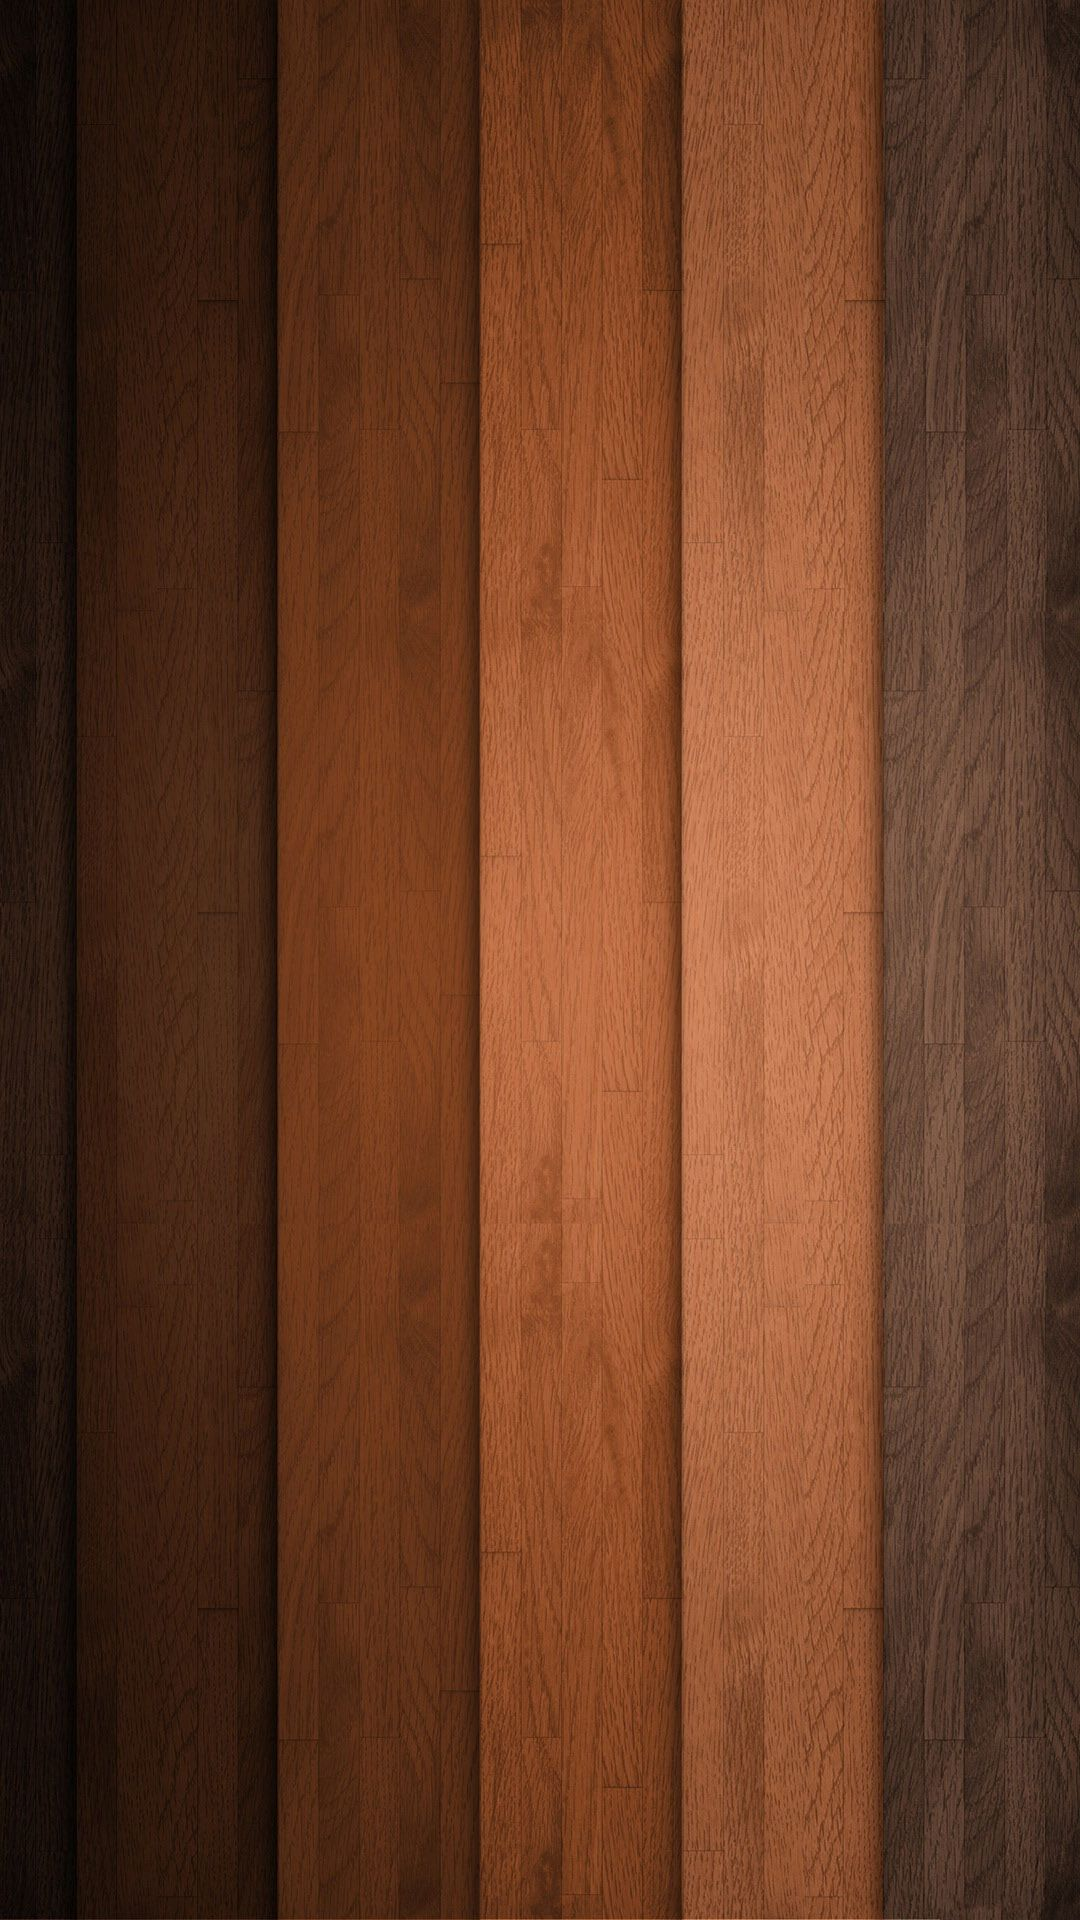 Wood Planks Pattern Texture Iphone 6 Plus Hd Wallpaper Wood Wallpaper Wood Grain Wallpaper Wood Iphone Wallpaper